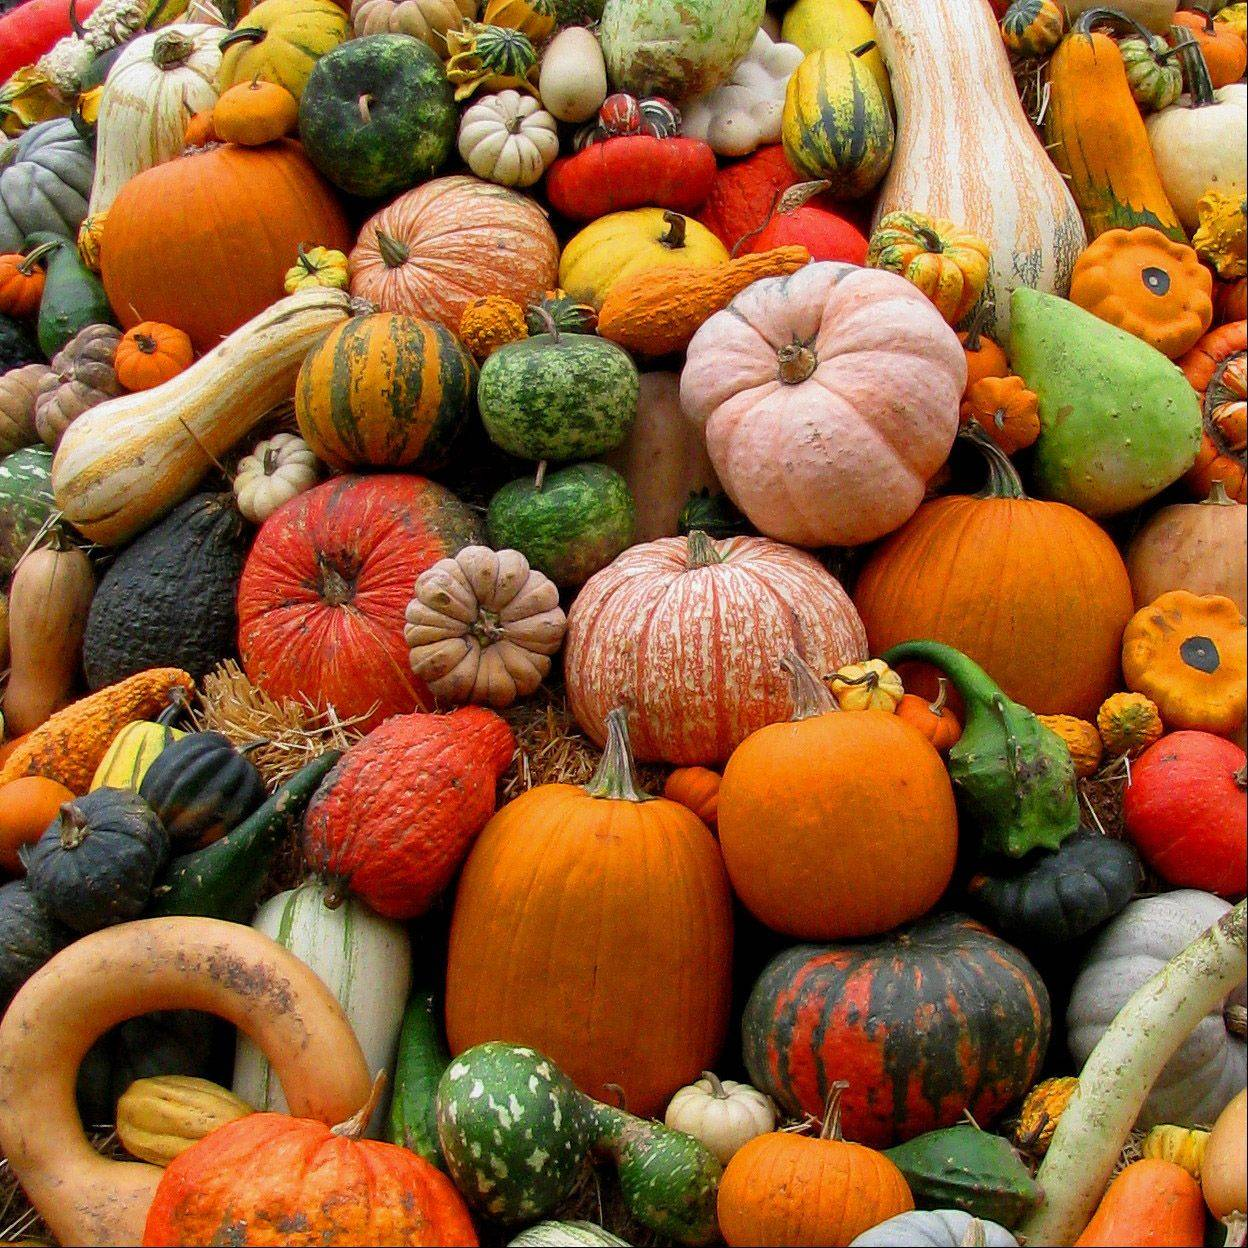 An autumn harvest at the Chicago Botanic Garden in Glencoe on October 5th.